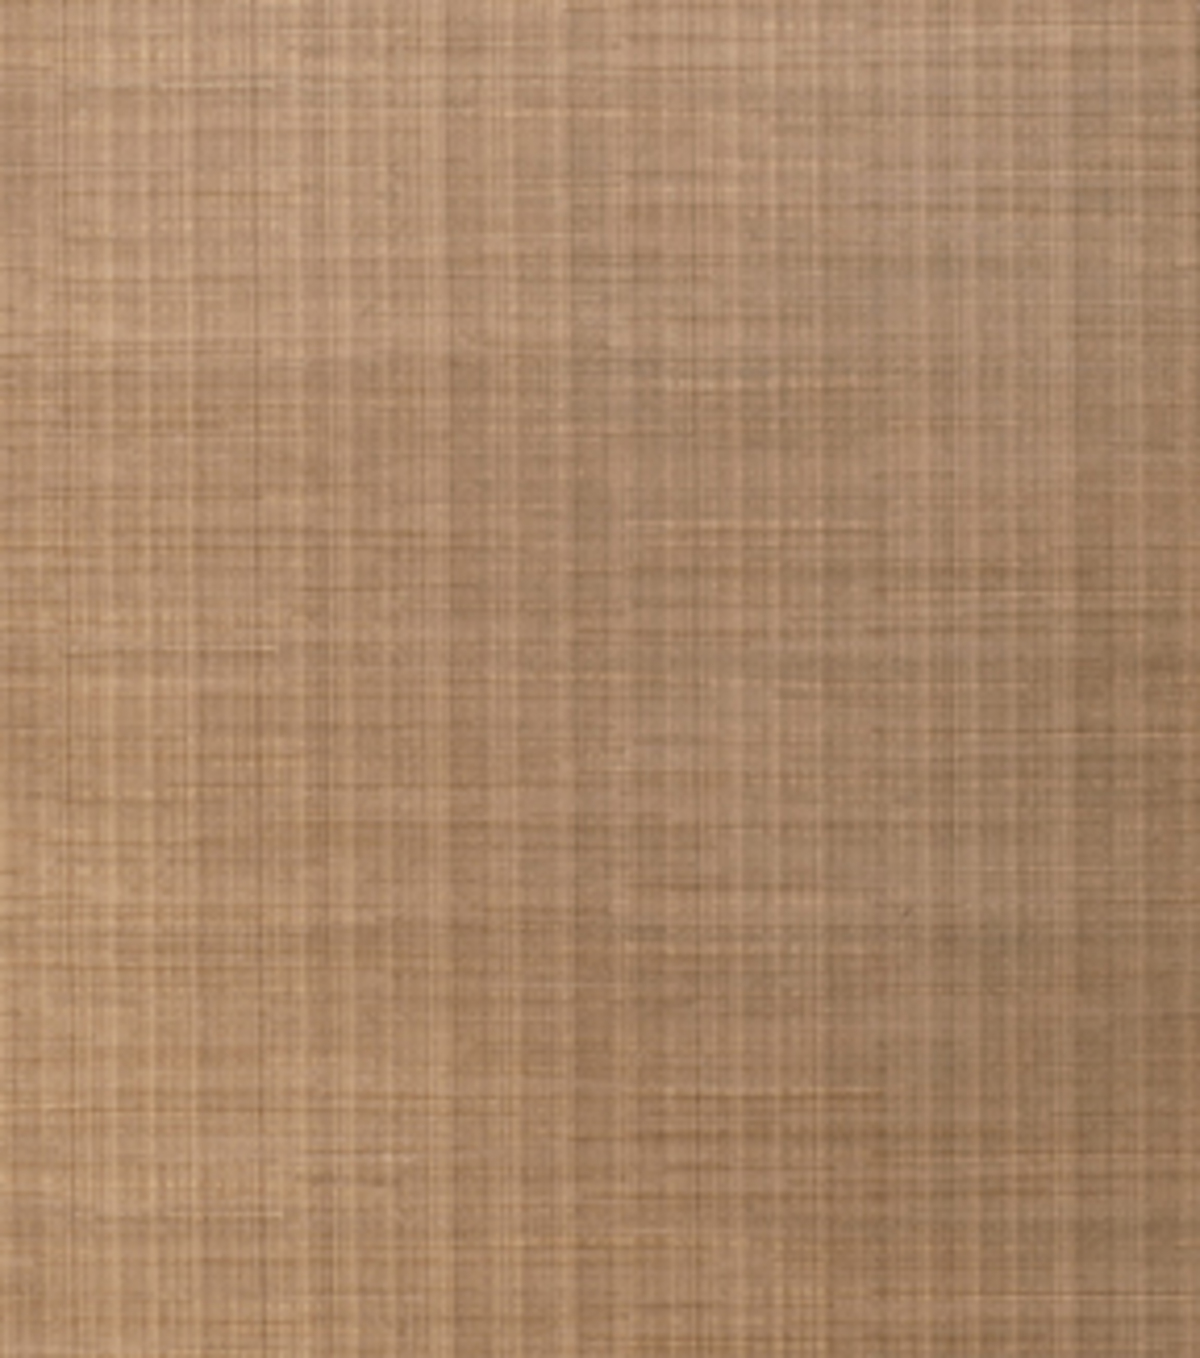 Home Decor 8\u0022x8\u0022 Fabric Swatch-Eaton Square Cargo /  Burlap